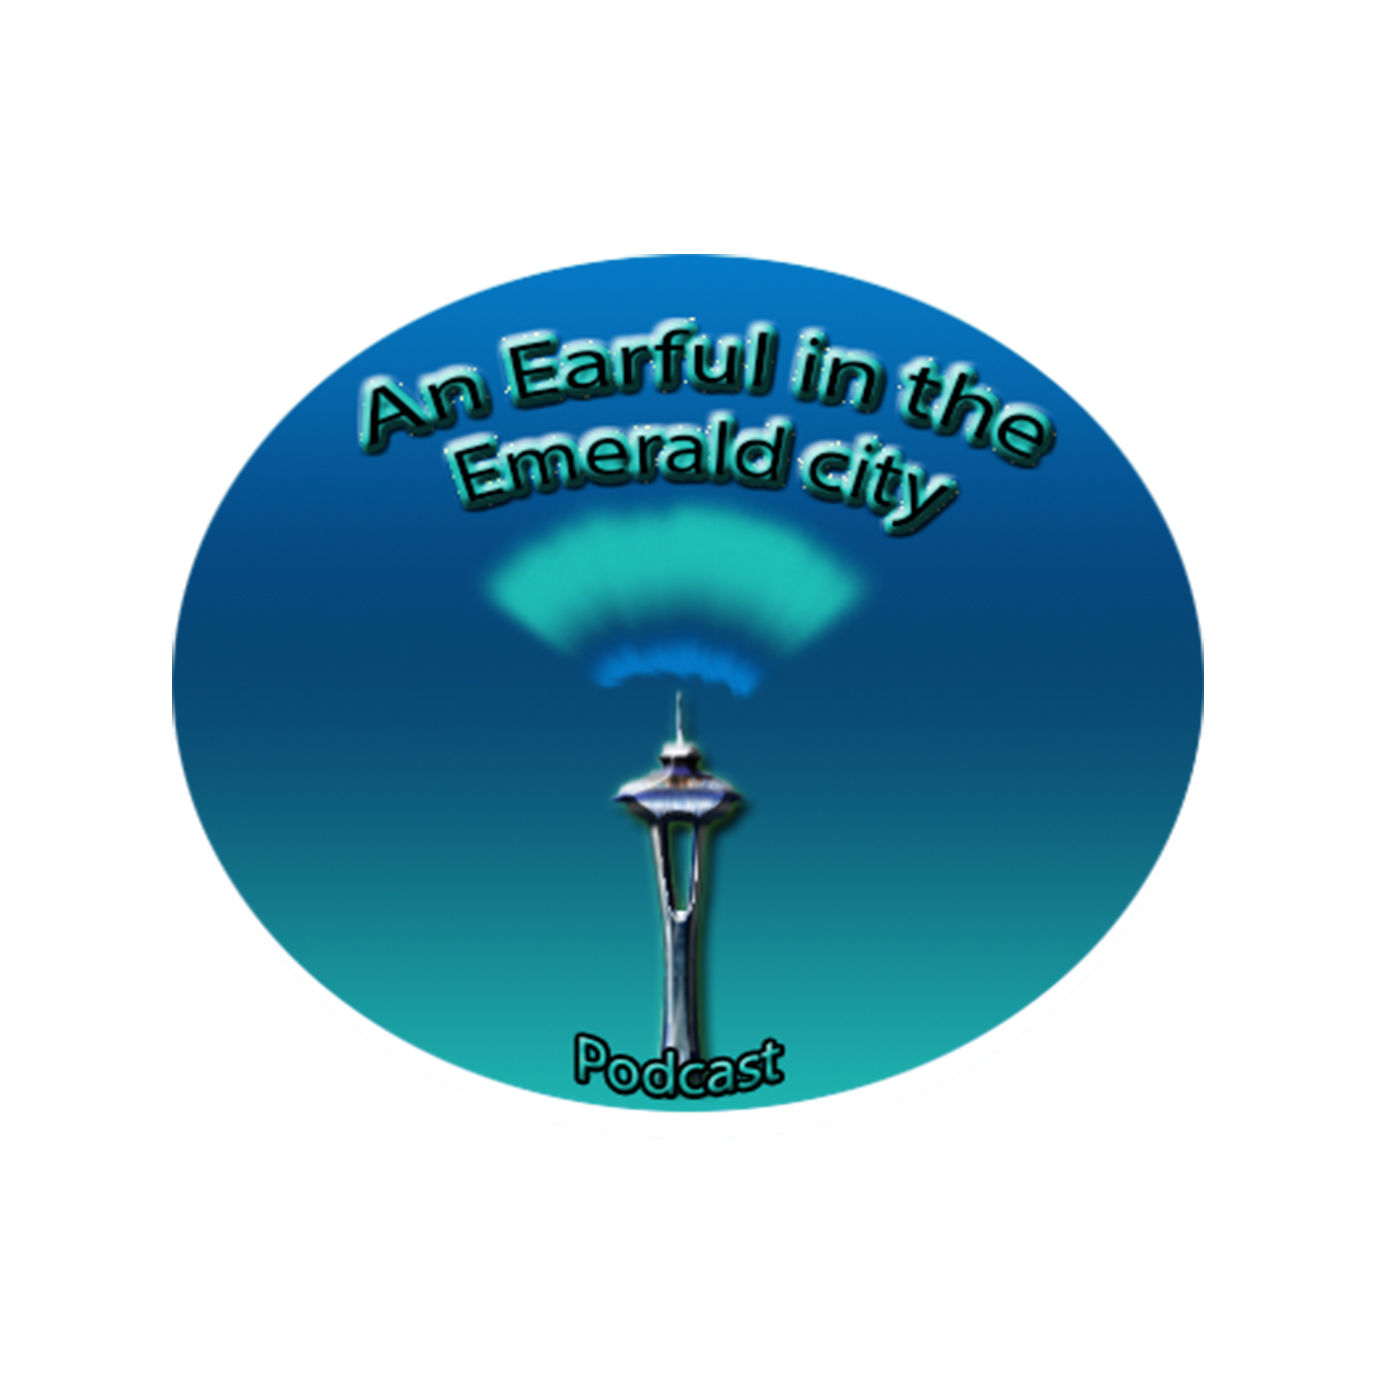 An Earful In the Emerald City